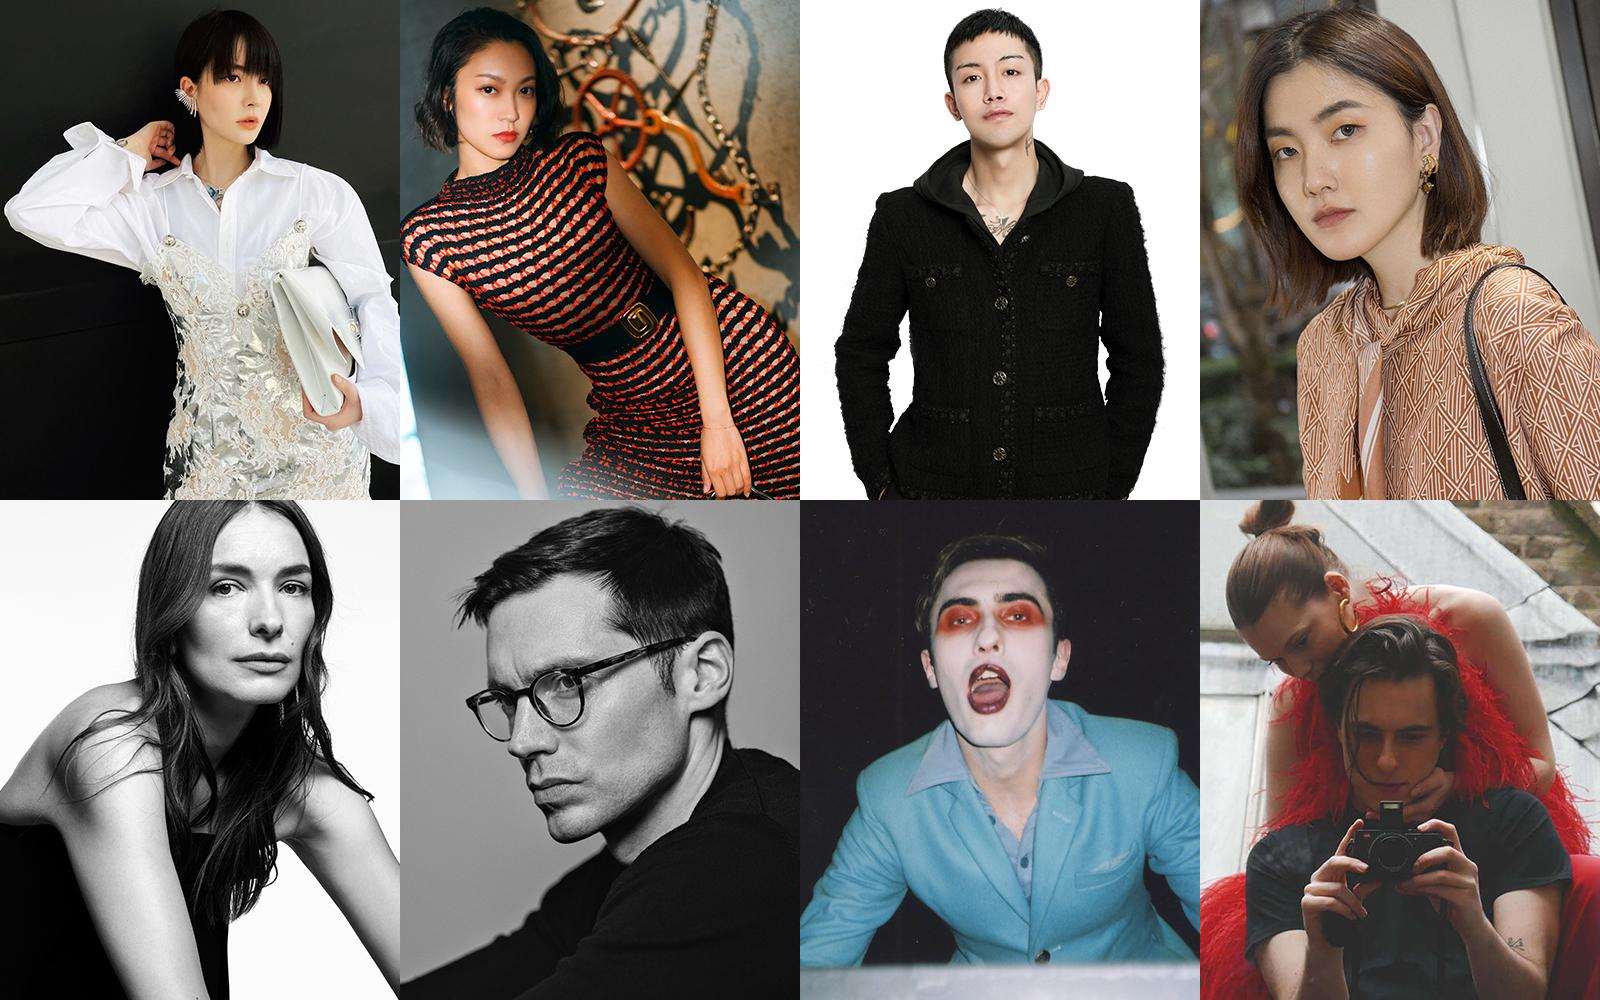 Farfetch Pairs British Designers With Top Influencers for China